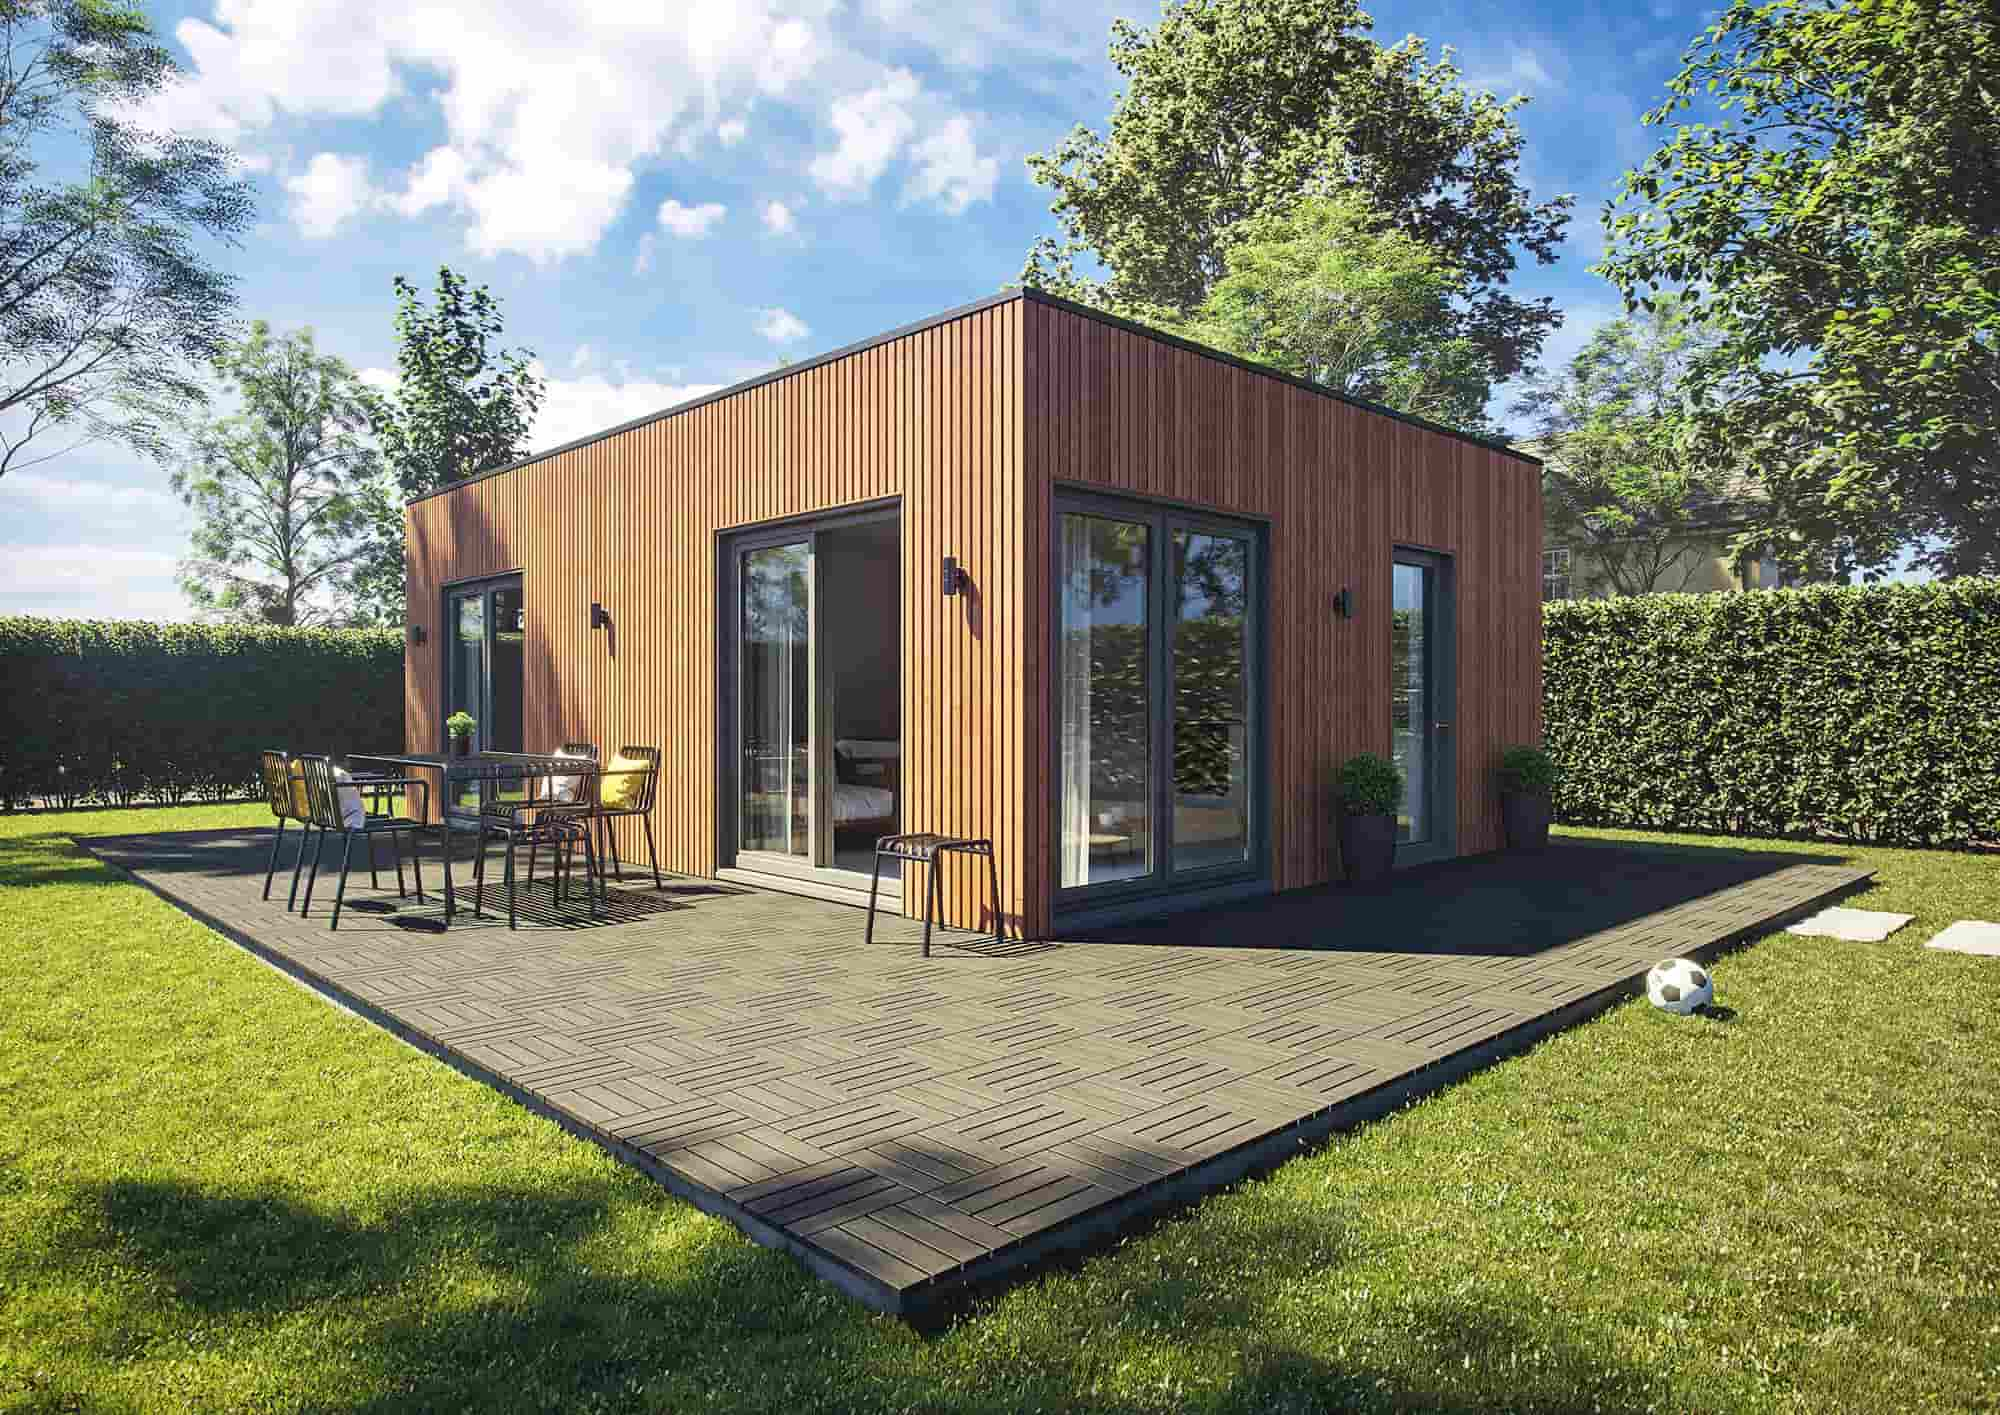 Care Home vs Granny Flat by KES Group, Modular Building